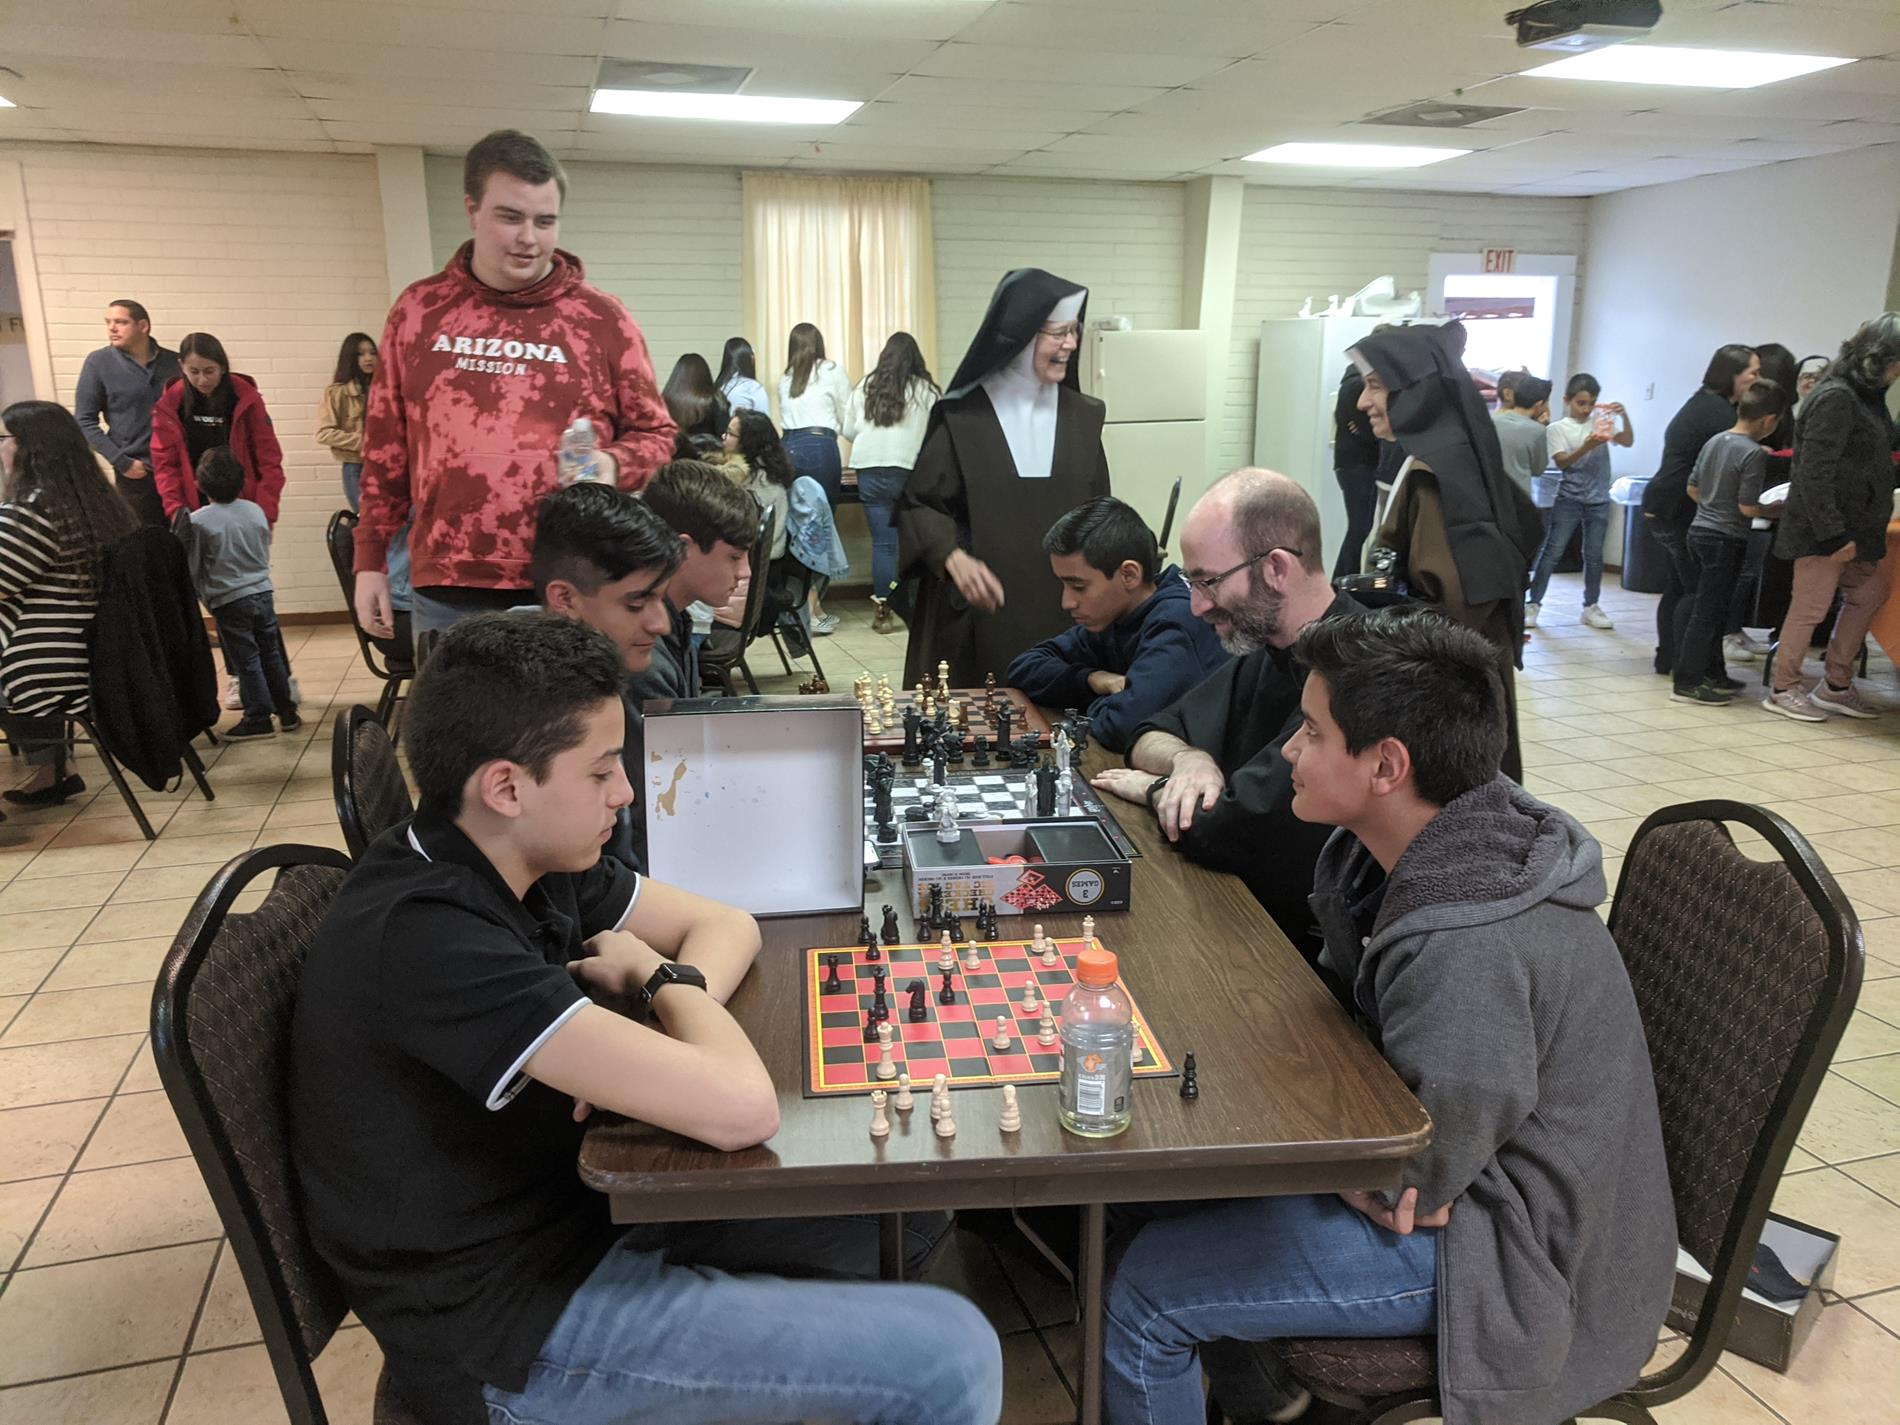 Students playing chess with a Franciscan friar who came from Franciscan University.